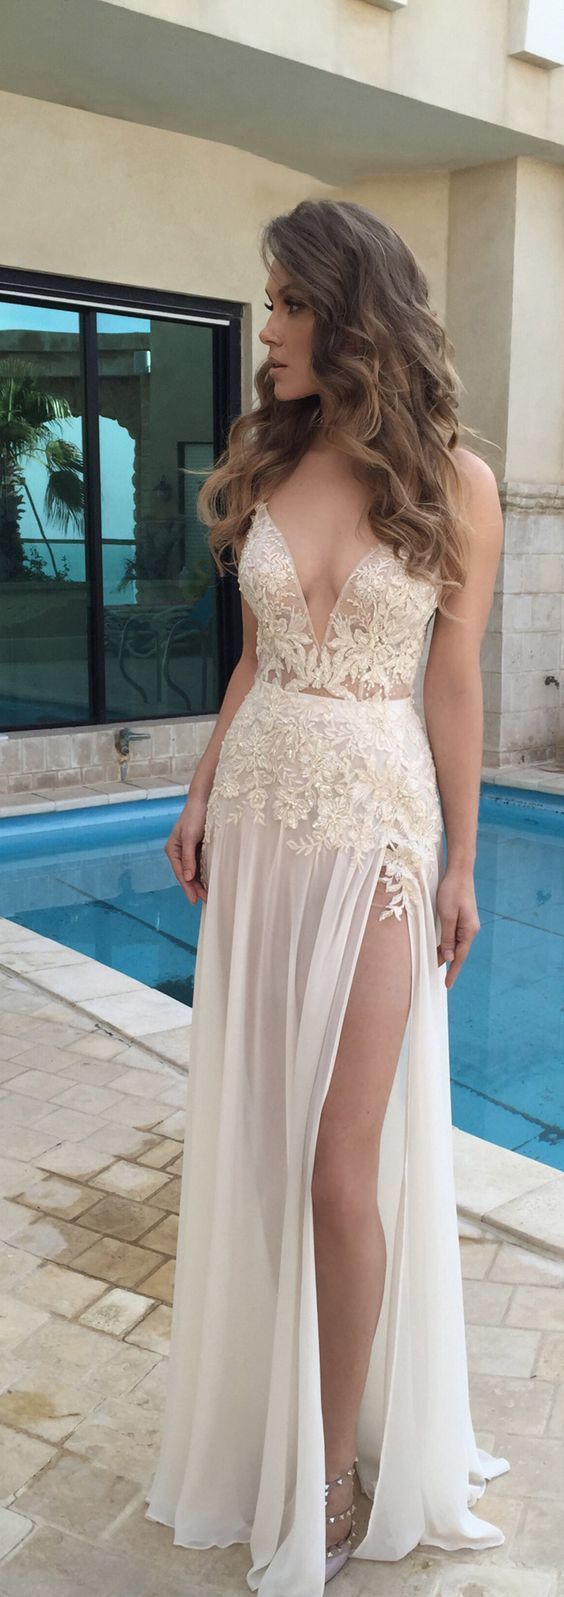 Best 25 Formal cocktail dress ideas on Pinterest Cocktail